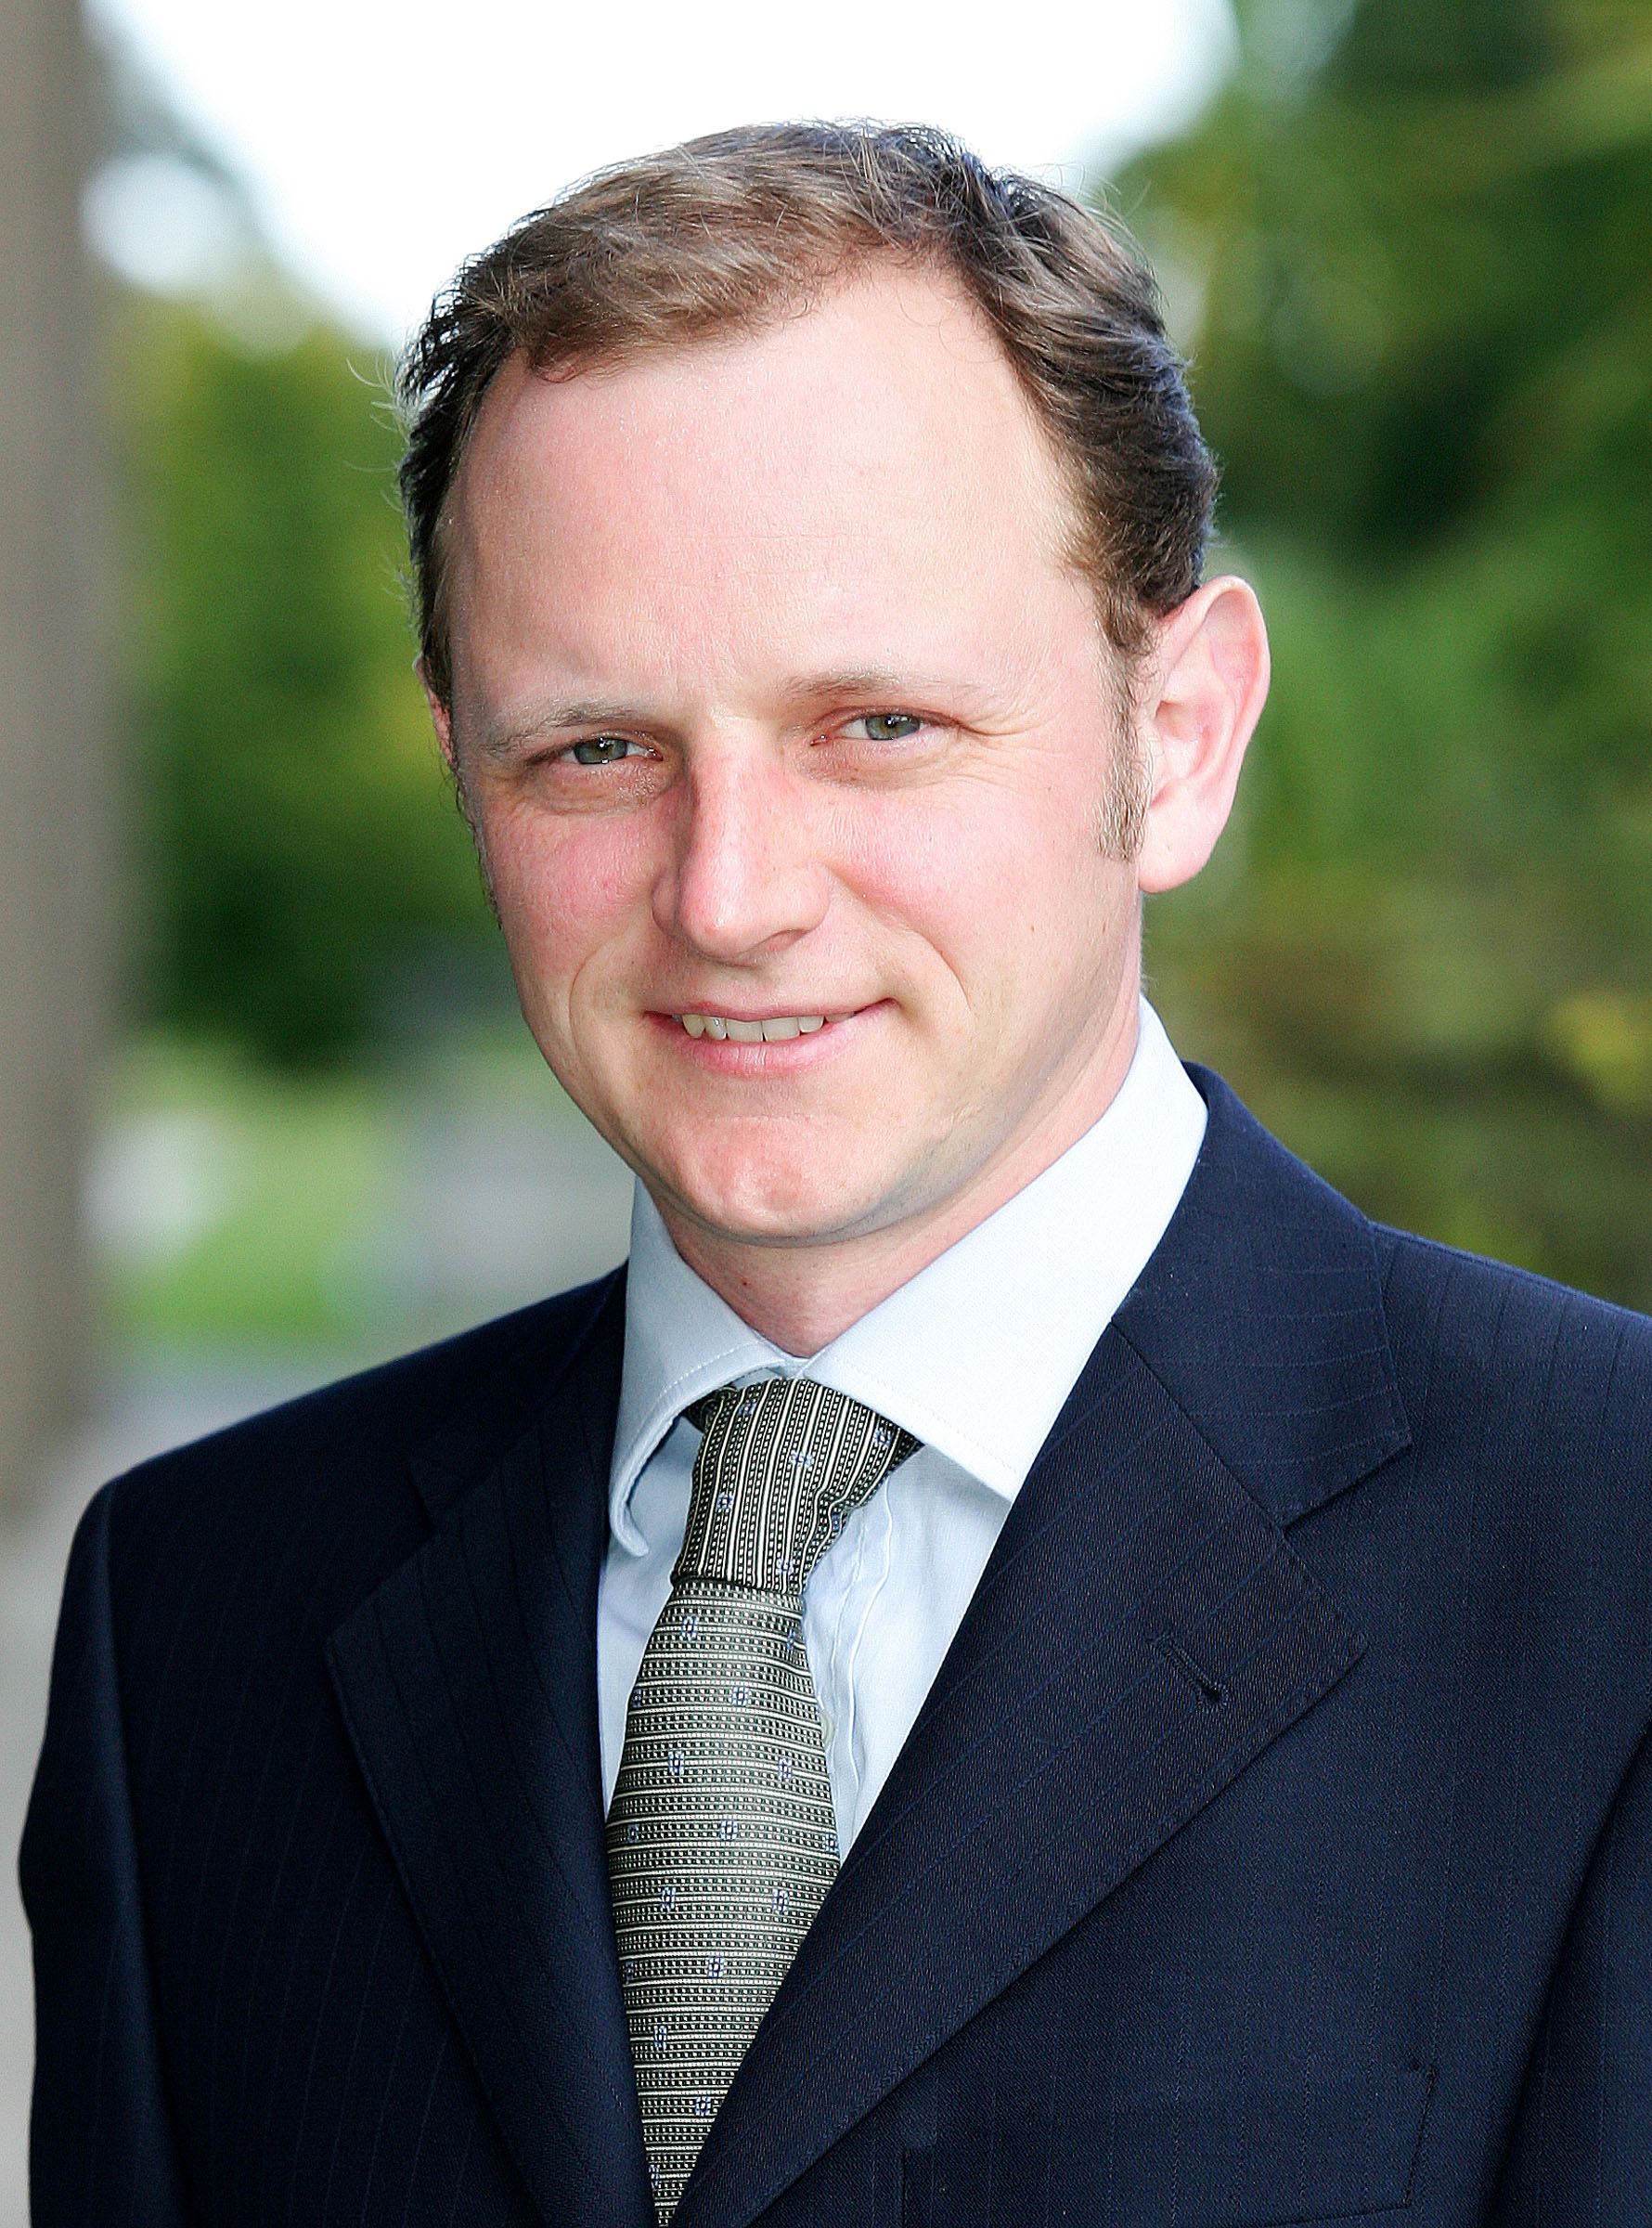 RTE business editor David Murphy to speak in Cork about economic recovery